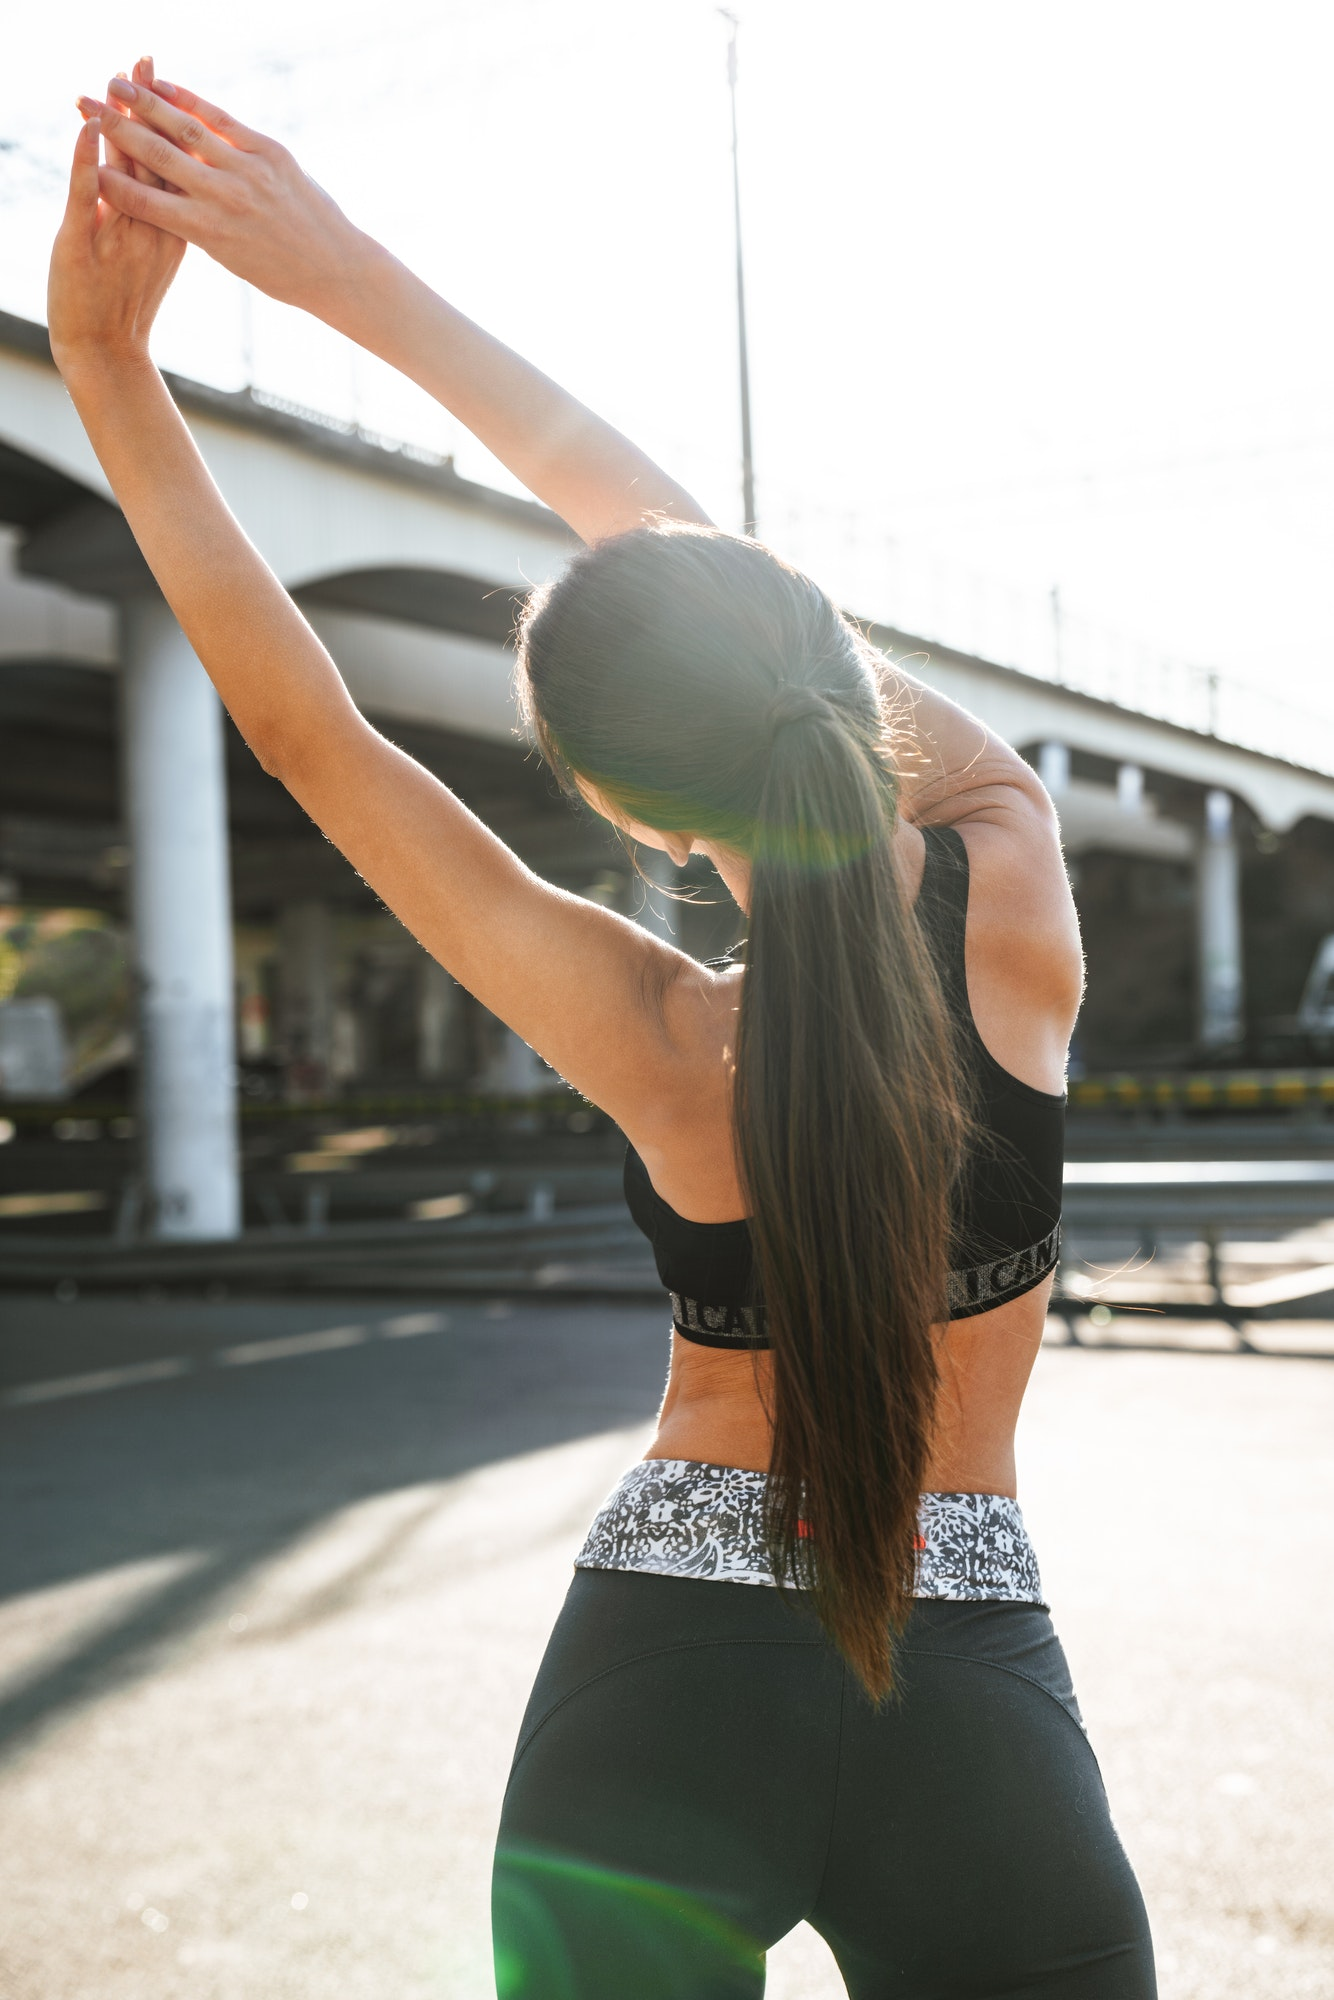 fitness-woman-make-stretching-exercises-outdoors-.jpg